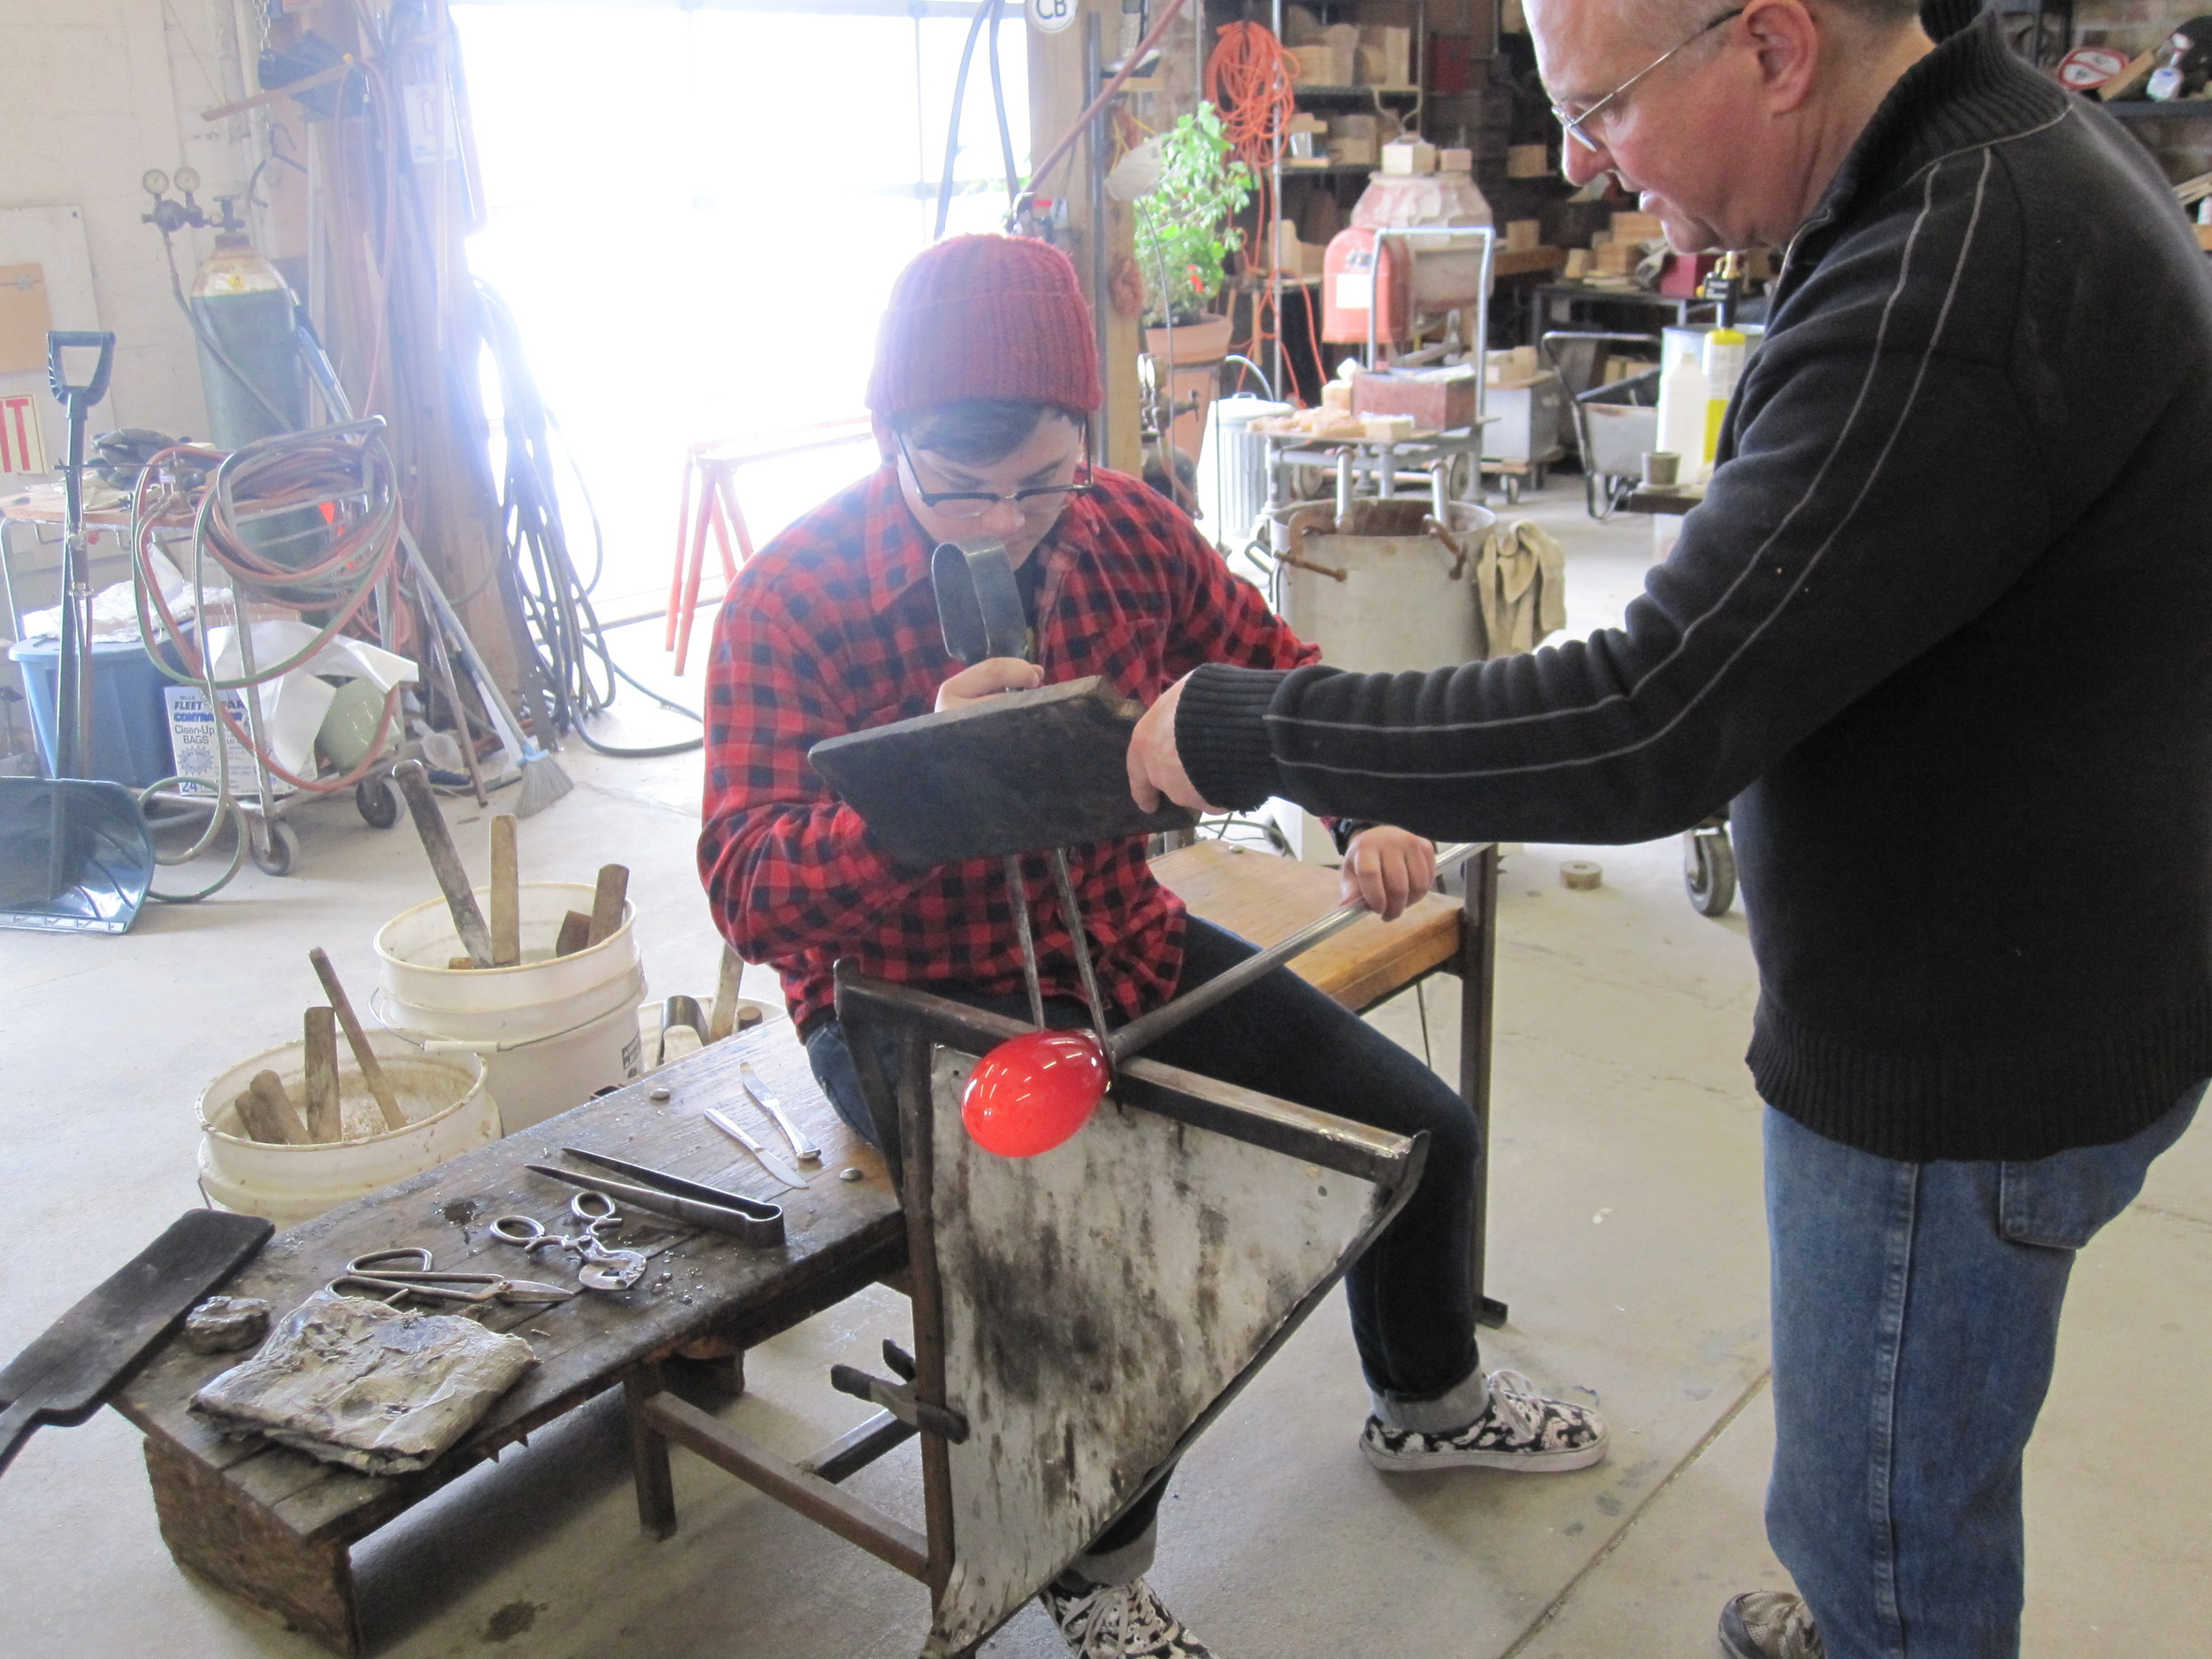 Beginner student working with hot glass.